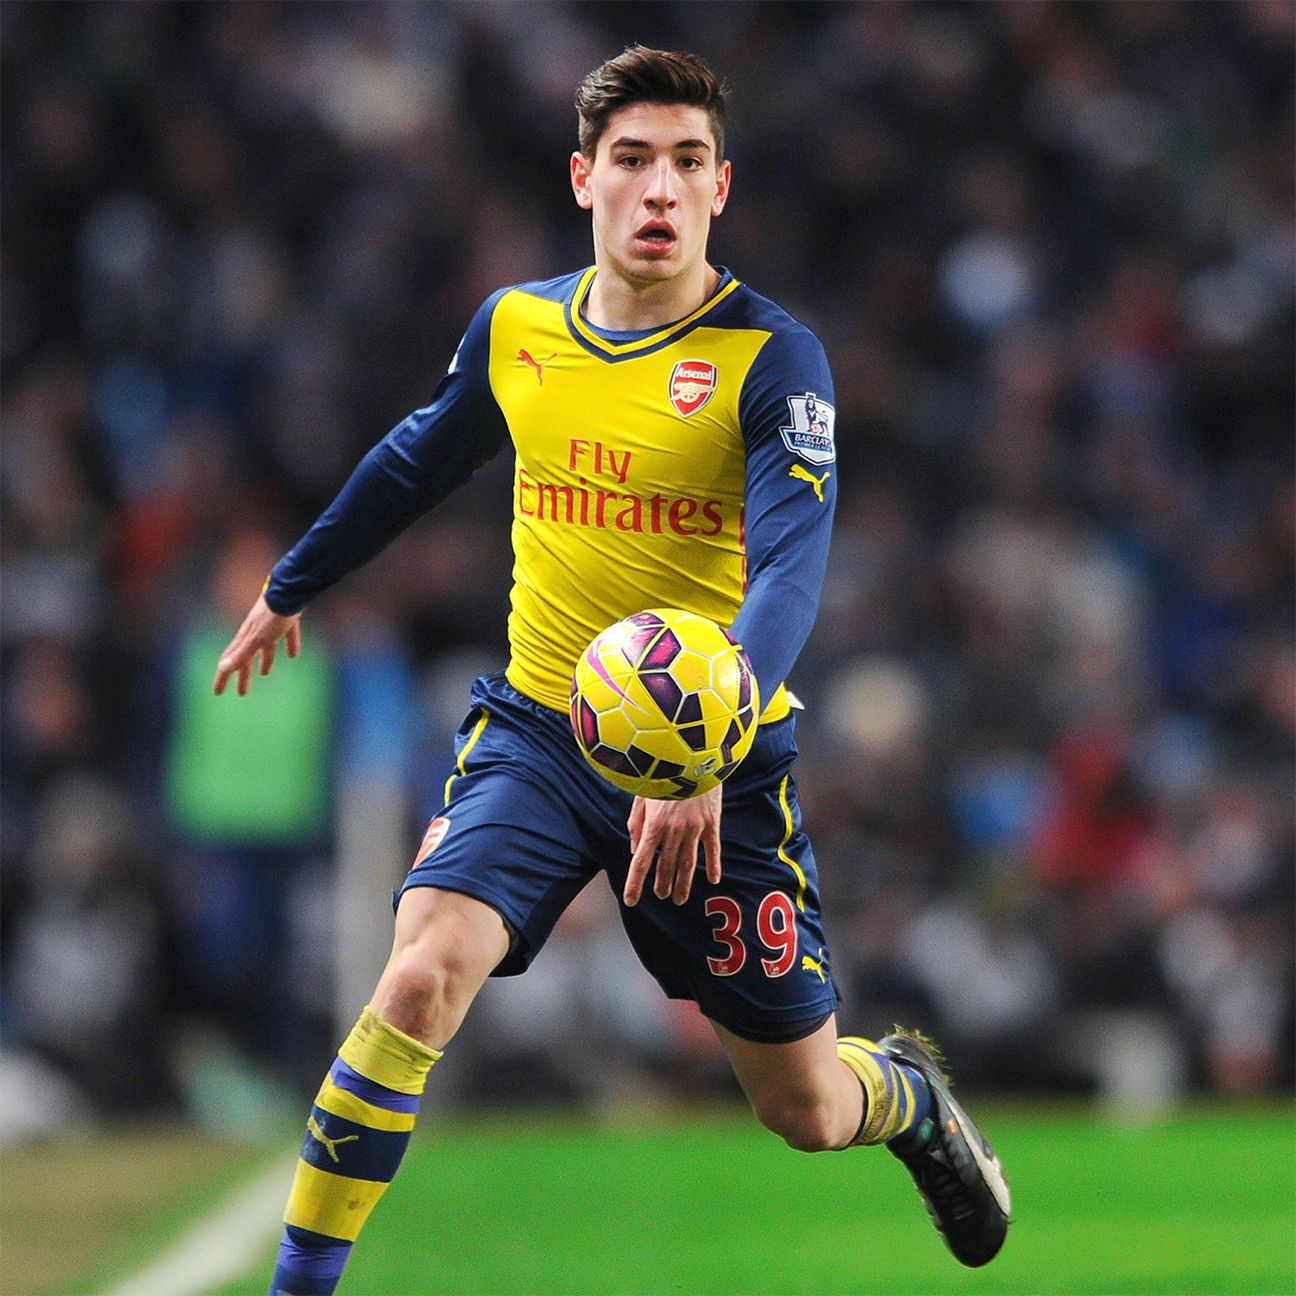 Arsenal are unbeaten in Premier League matches in which Hector Bellerin has started.